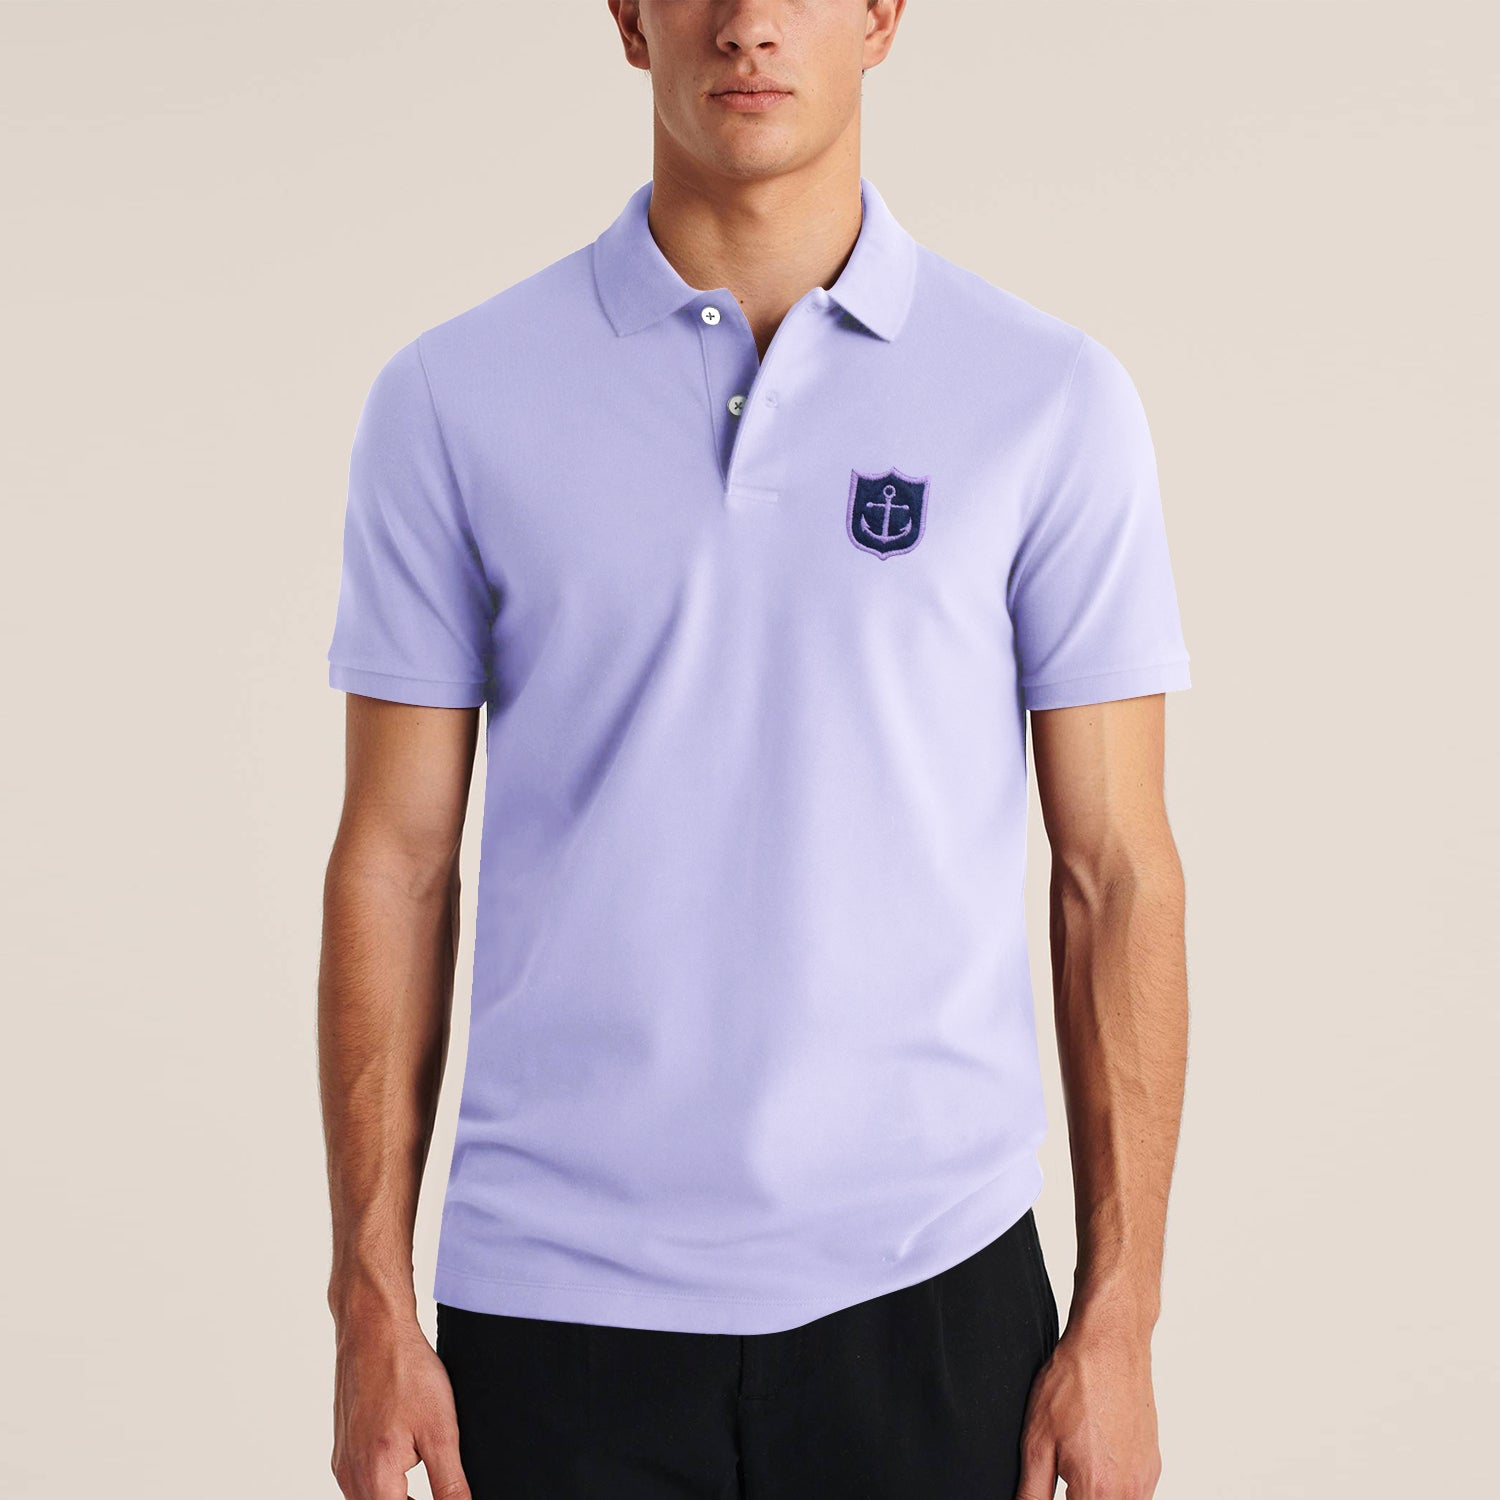 Express Stylish Summer Polo Shirt For Men-Light Purple-BE11454